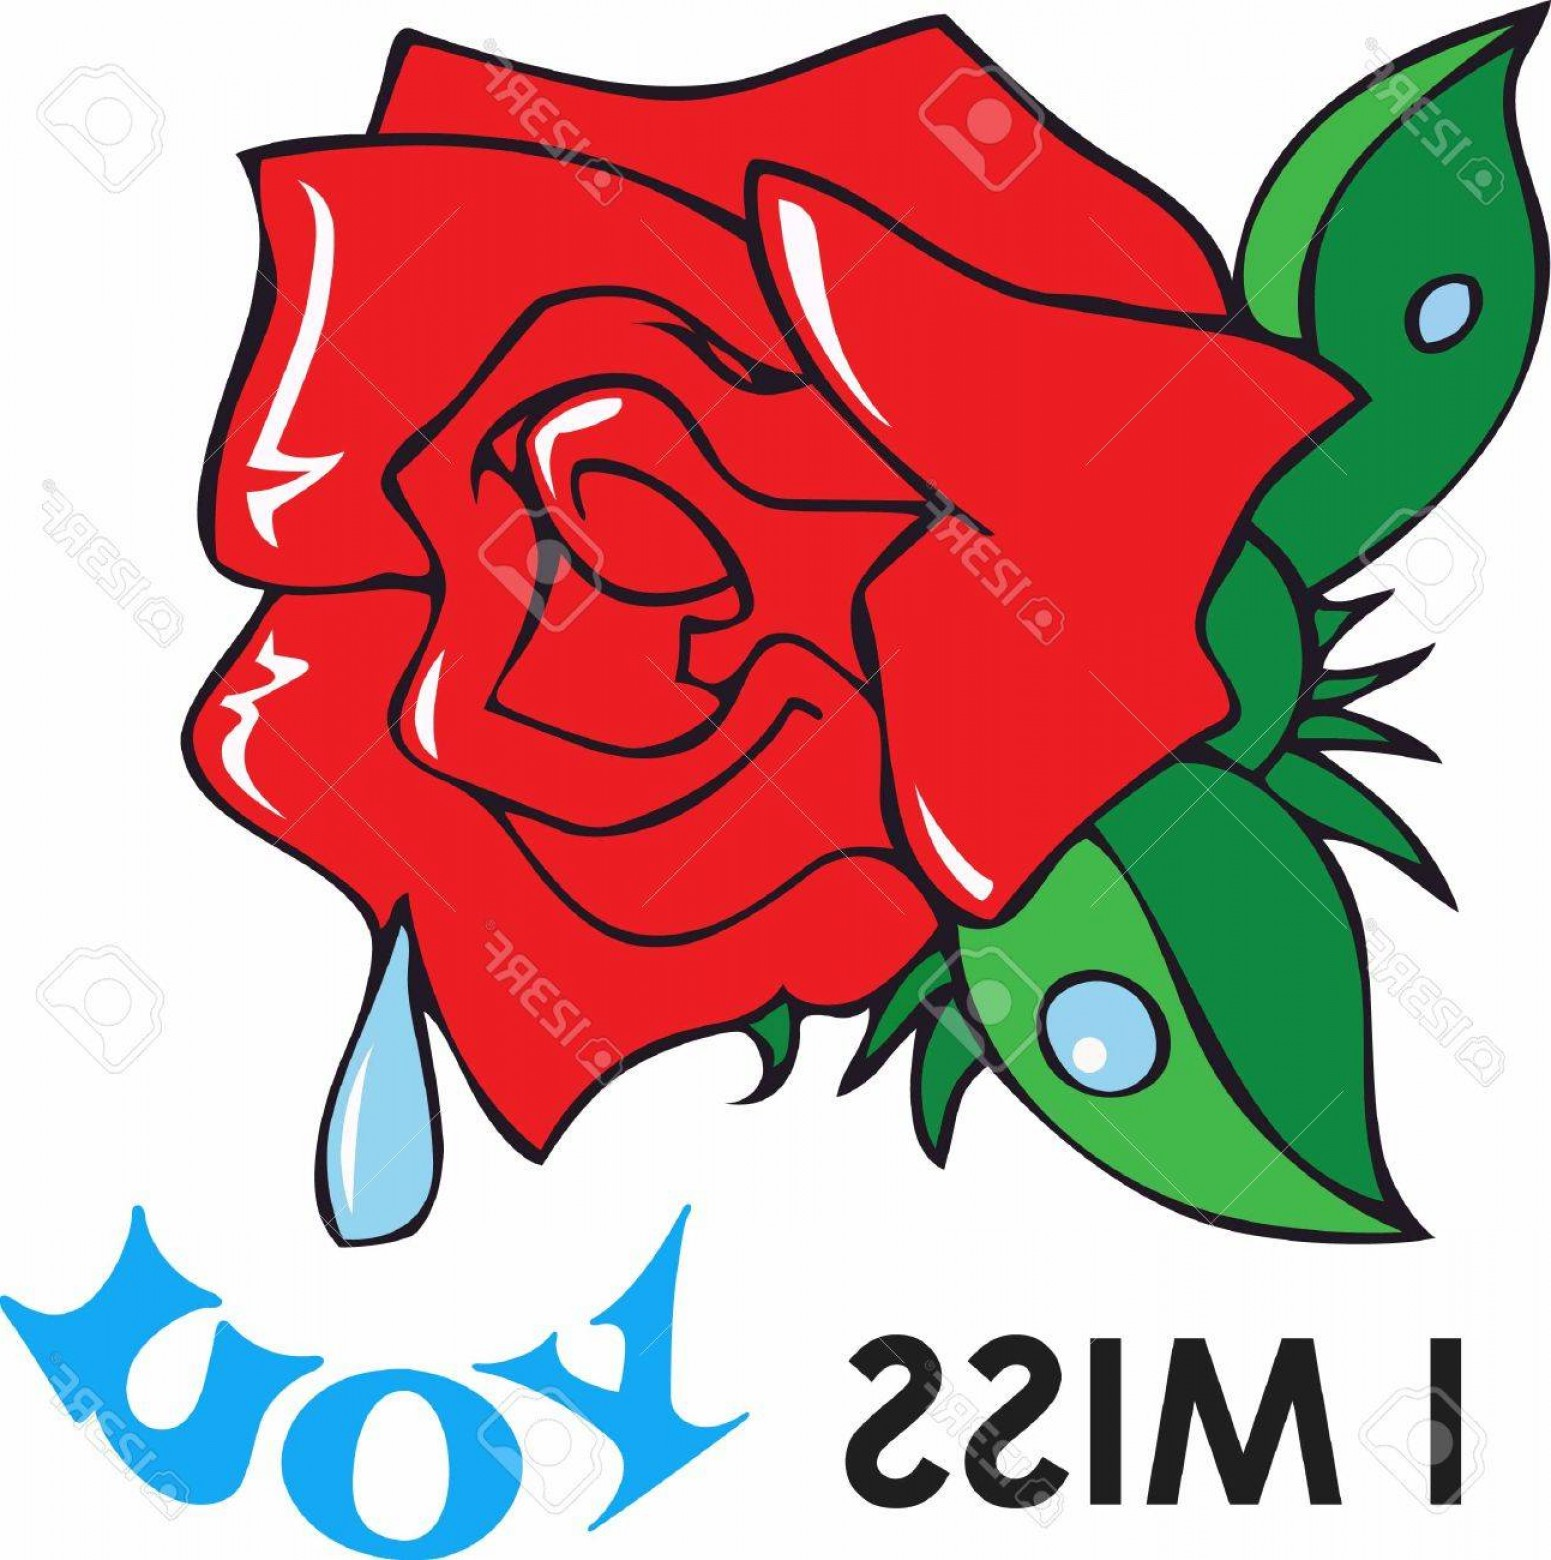 Vector Tear Away: Photostock Vector This Beautiful Image Of A Red Rose For Love And A Tear Is A Perfect Image To Send To A Loved One Tha